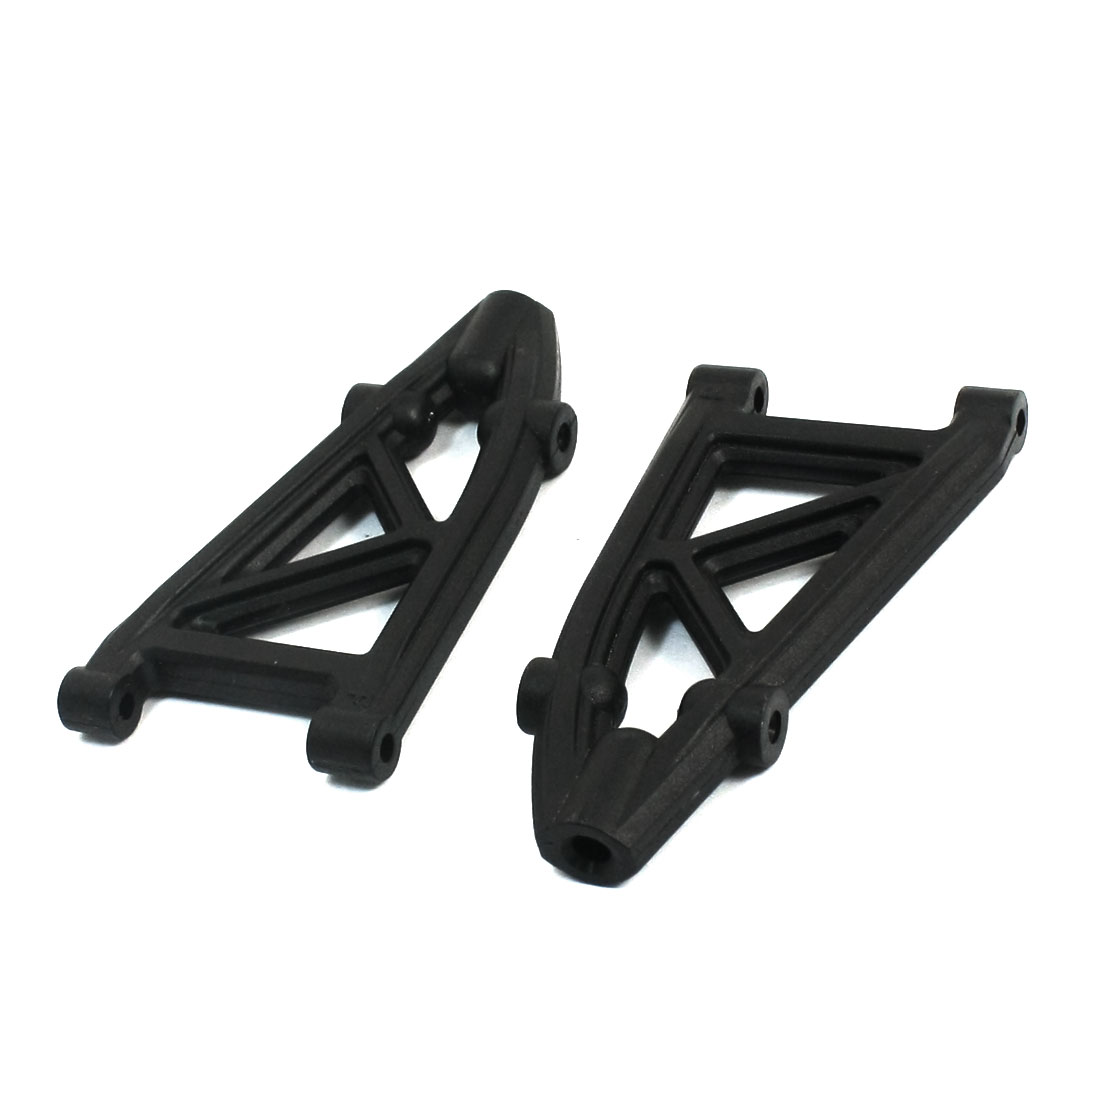 2Pcs 08049 Front Lower Suspension Arm for RC 1/10 4WD Truck 94188